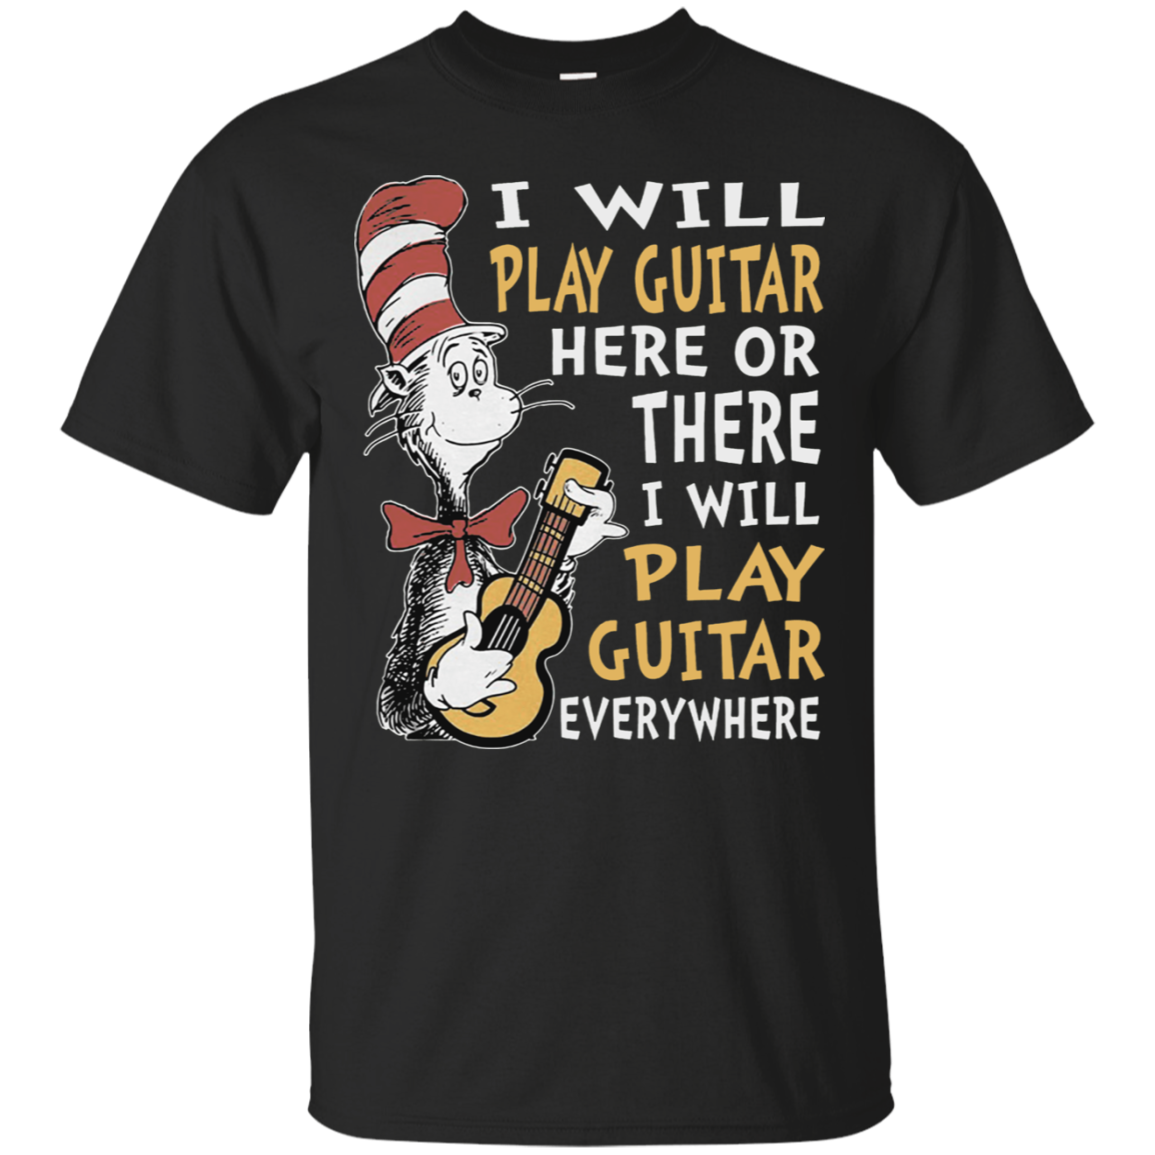 I Will Play Guitar Here Or There I Will Play Guitar Everywhere Tshirt